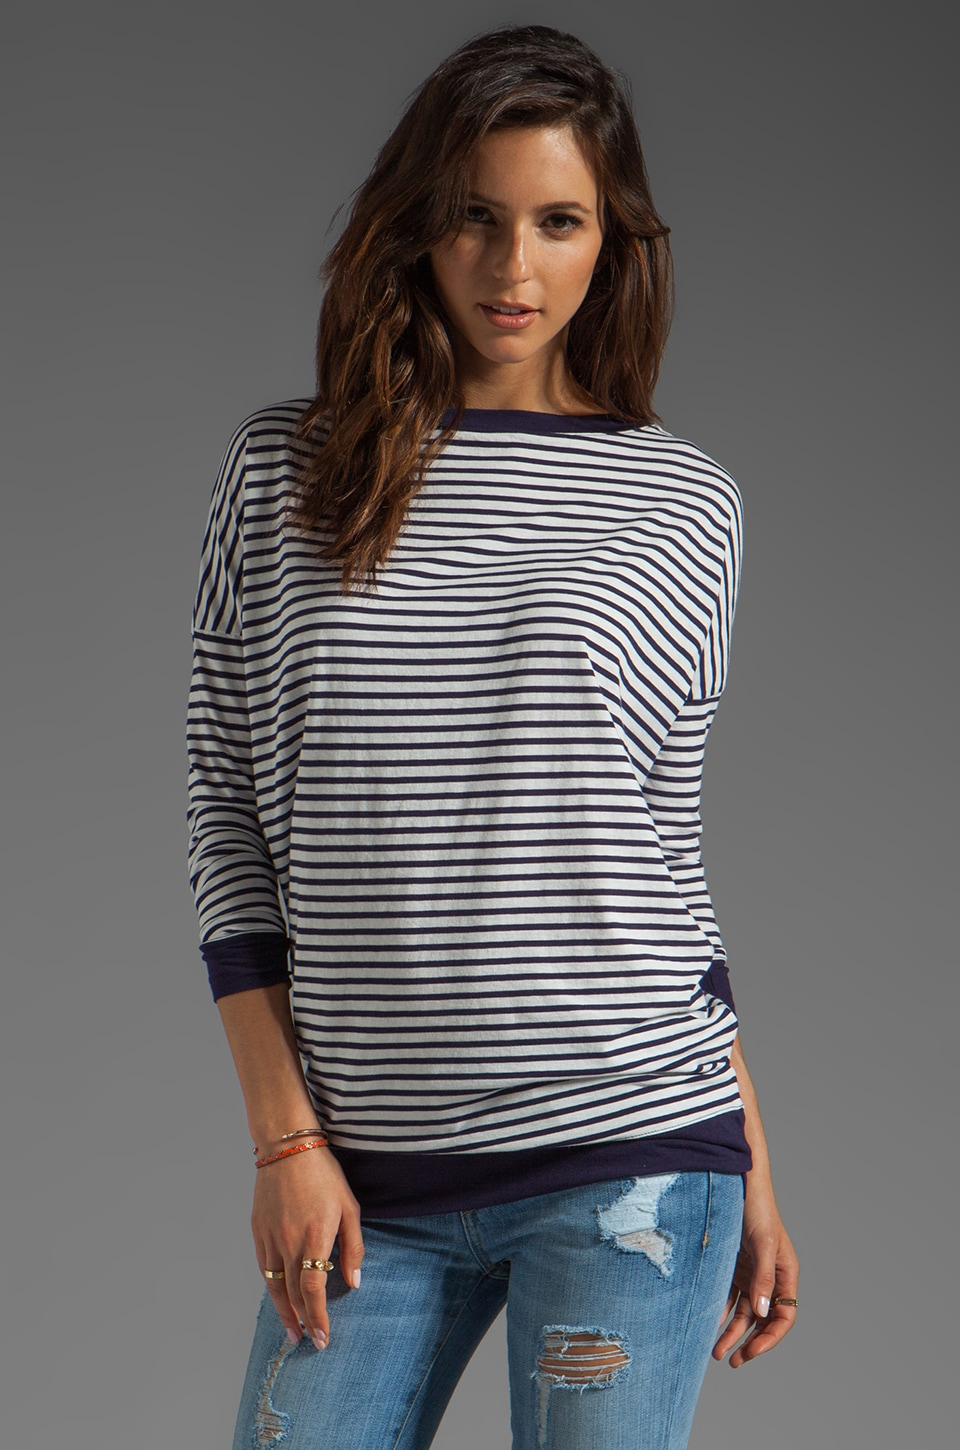 DemyLee Charlie Sailor Stripe Long Sleeve Top in White/Navy